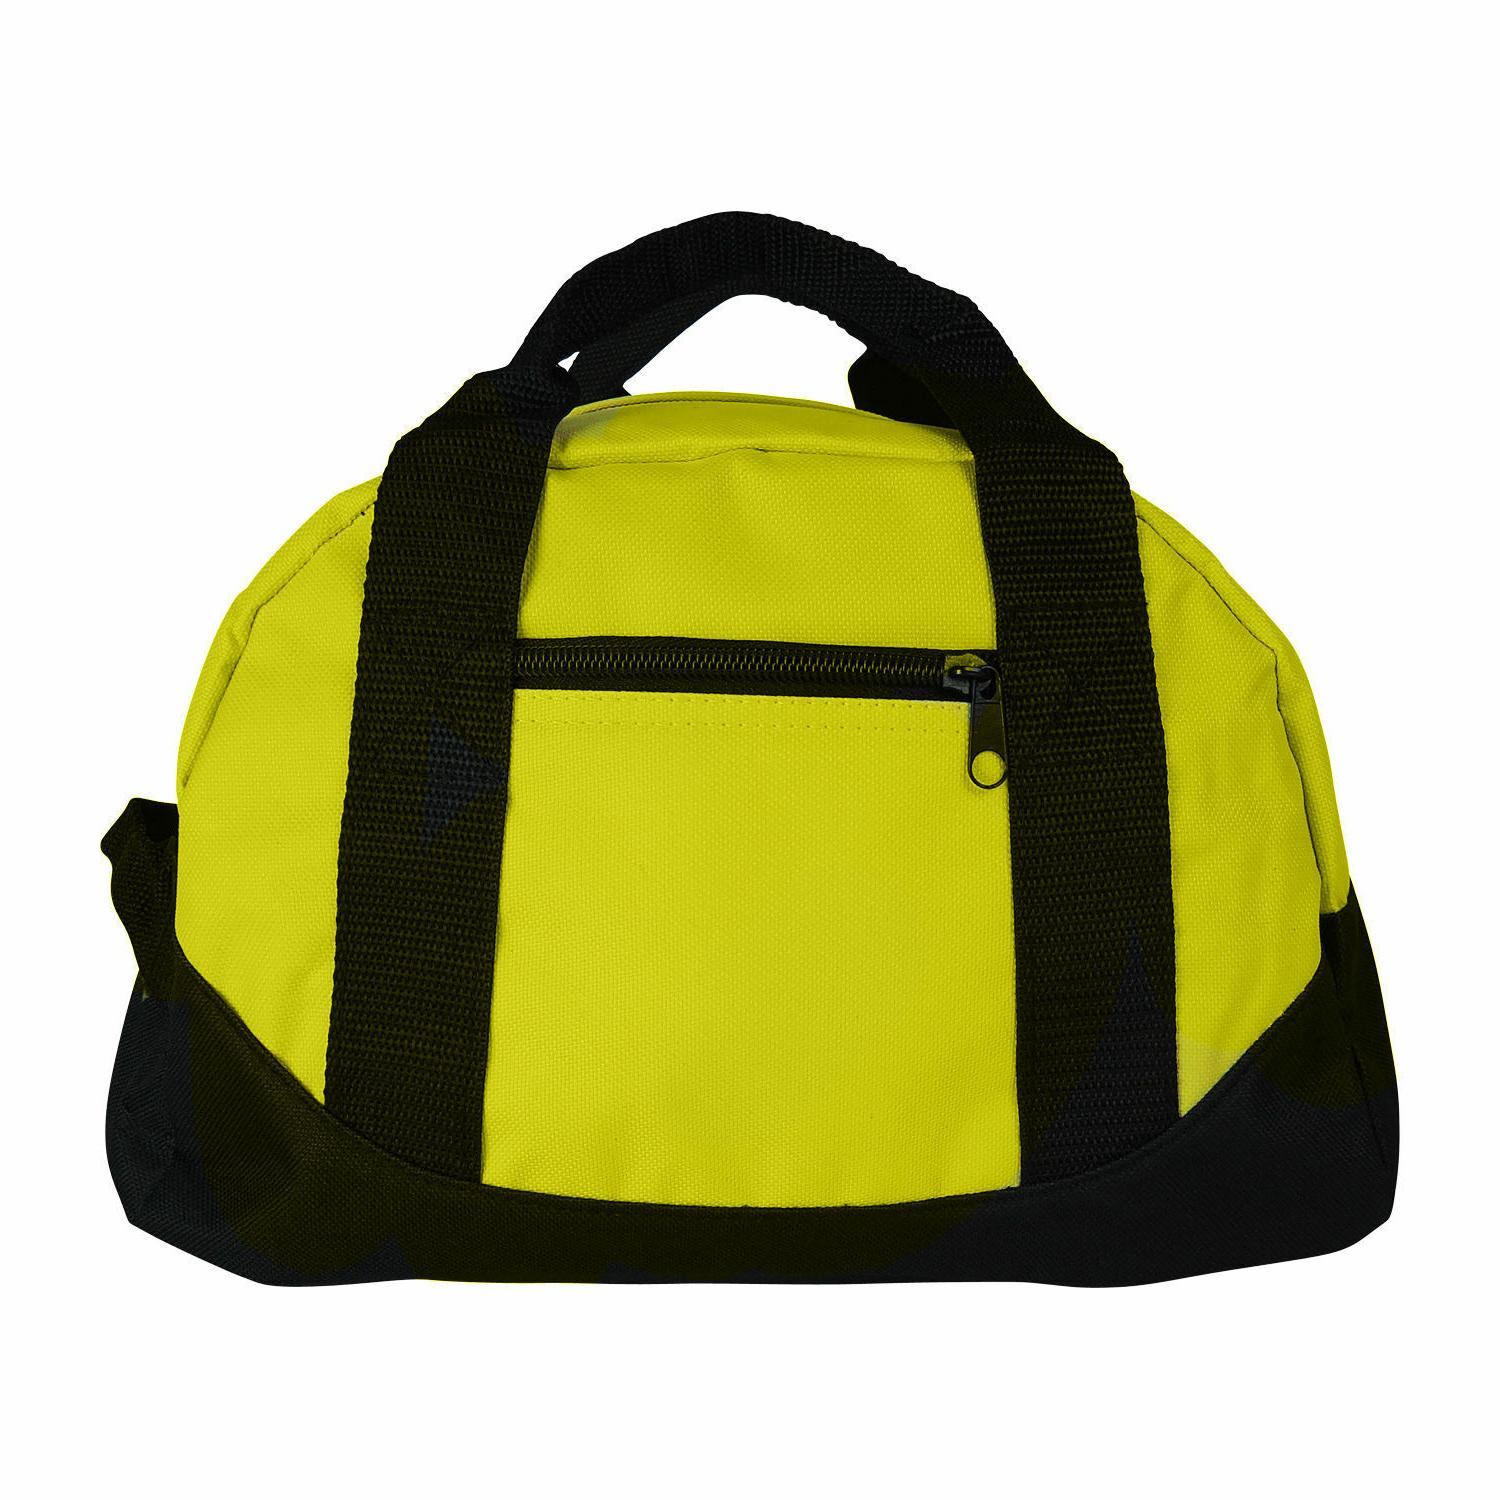 """12"""" Duffle Travel Sports Gym Bags Carry-on Luggage Small Tone"""